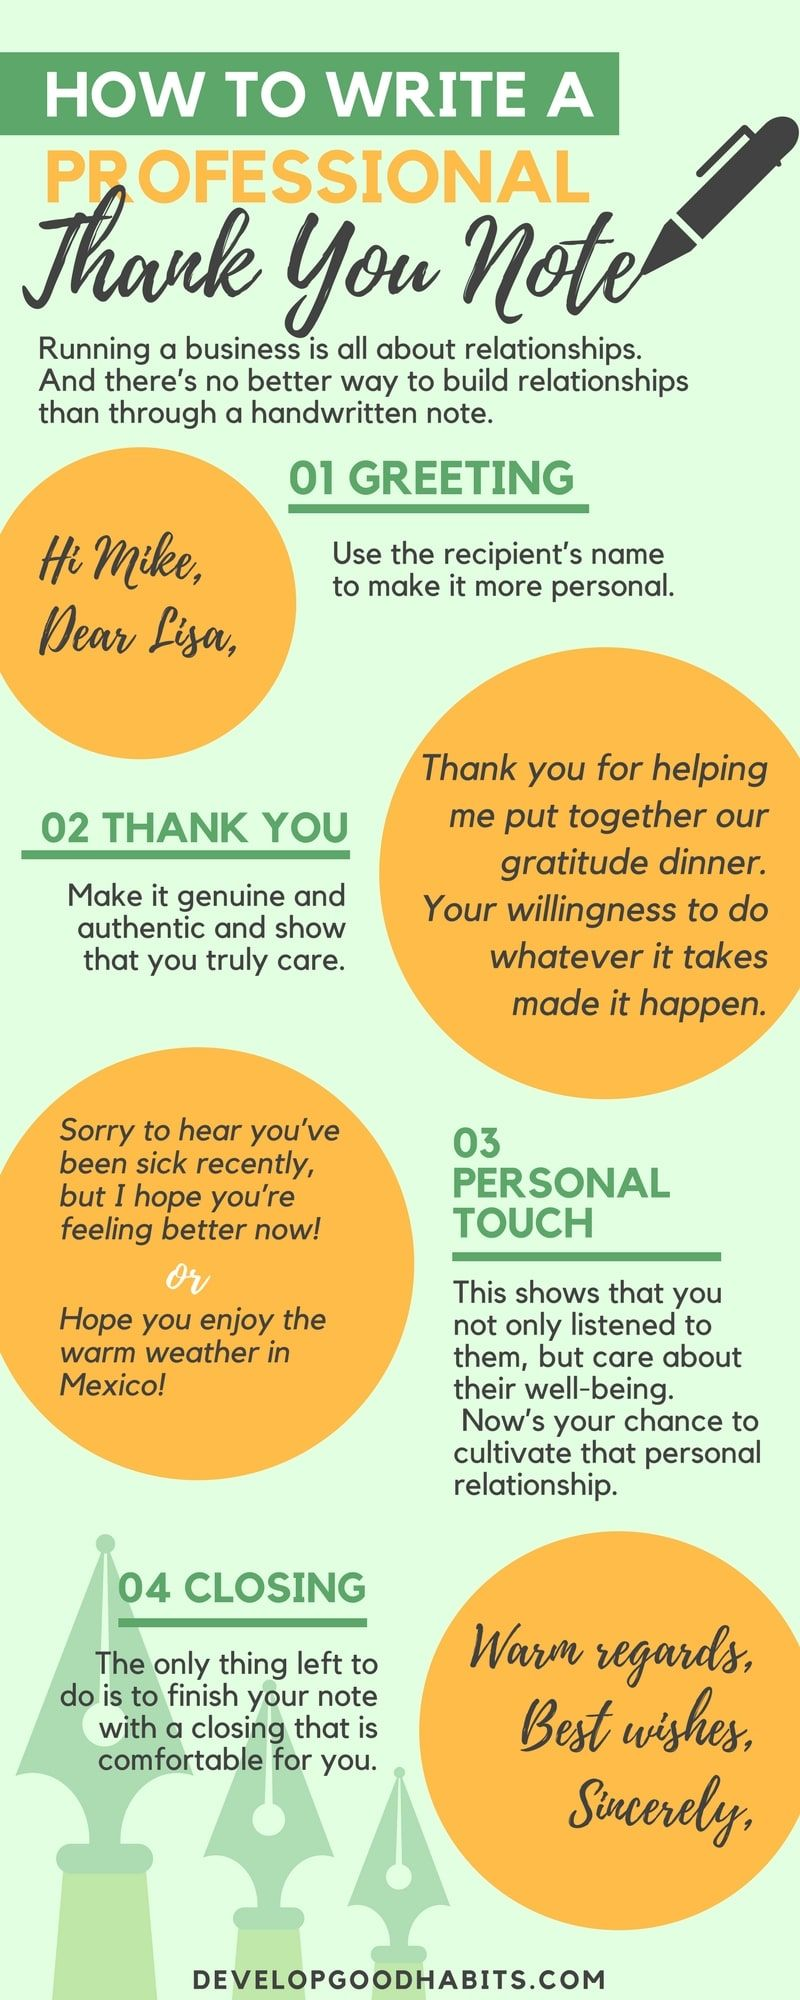 How To Write Professional Thank You Cards That Strengthen Your